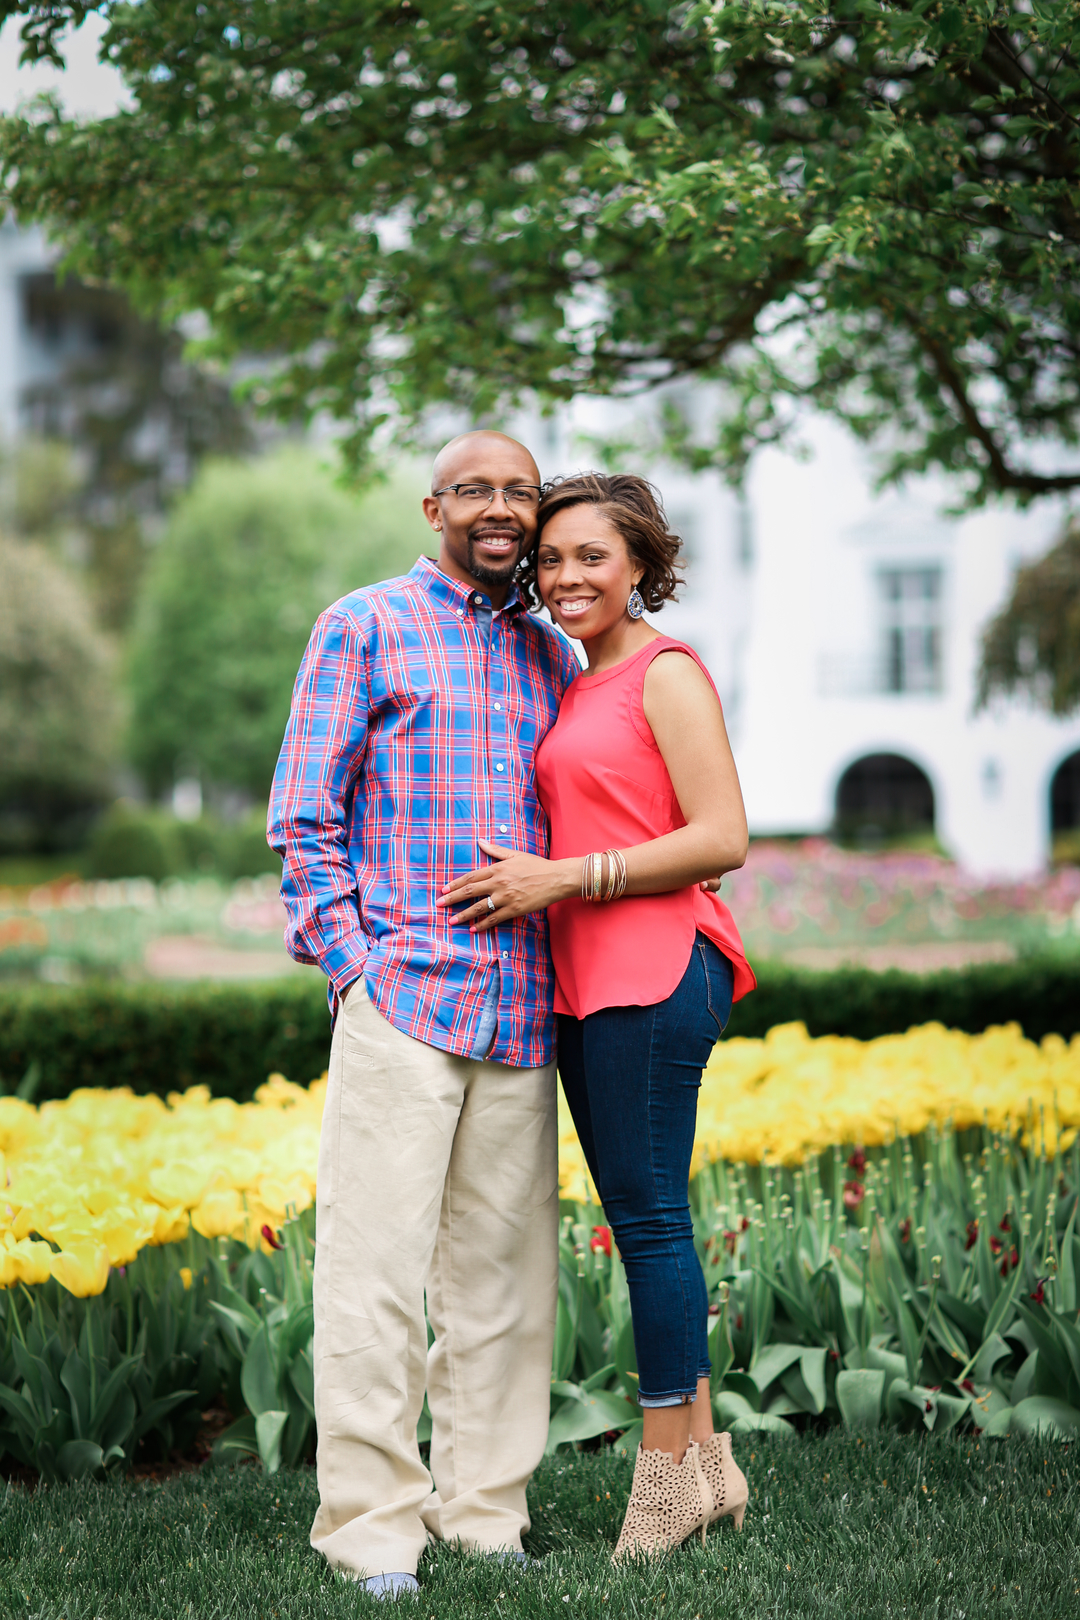 qzr4q50z7fr97r2a5152_big West Virginia Engagement Session at the Greenbriar Resort